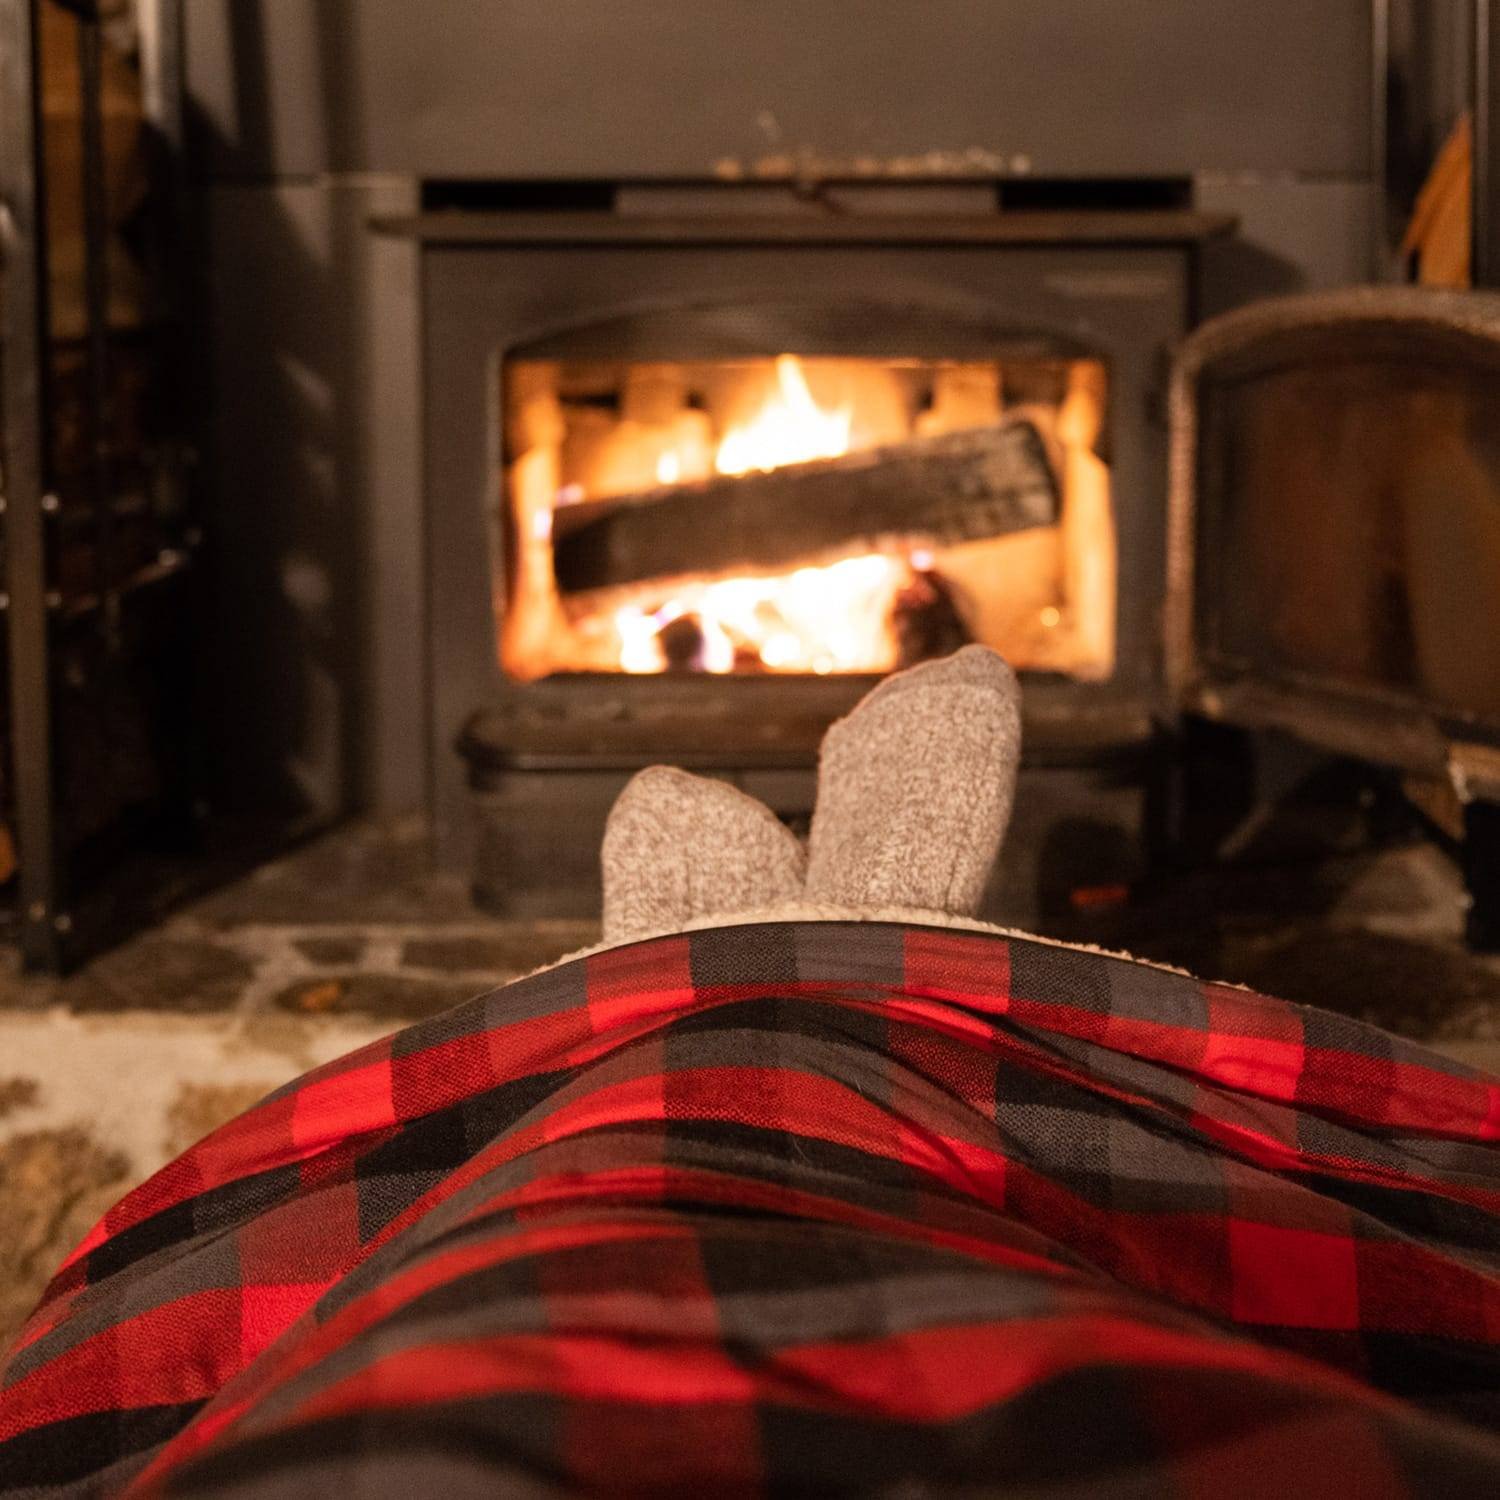 Feet under a flannel throw blanket in front of a fireplace